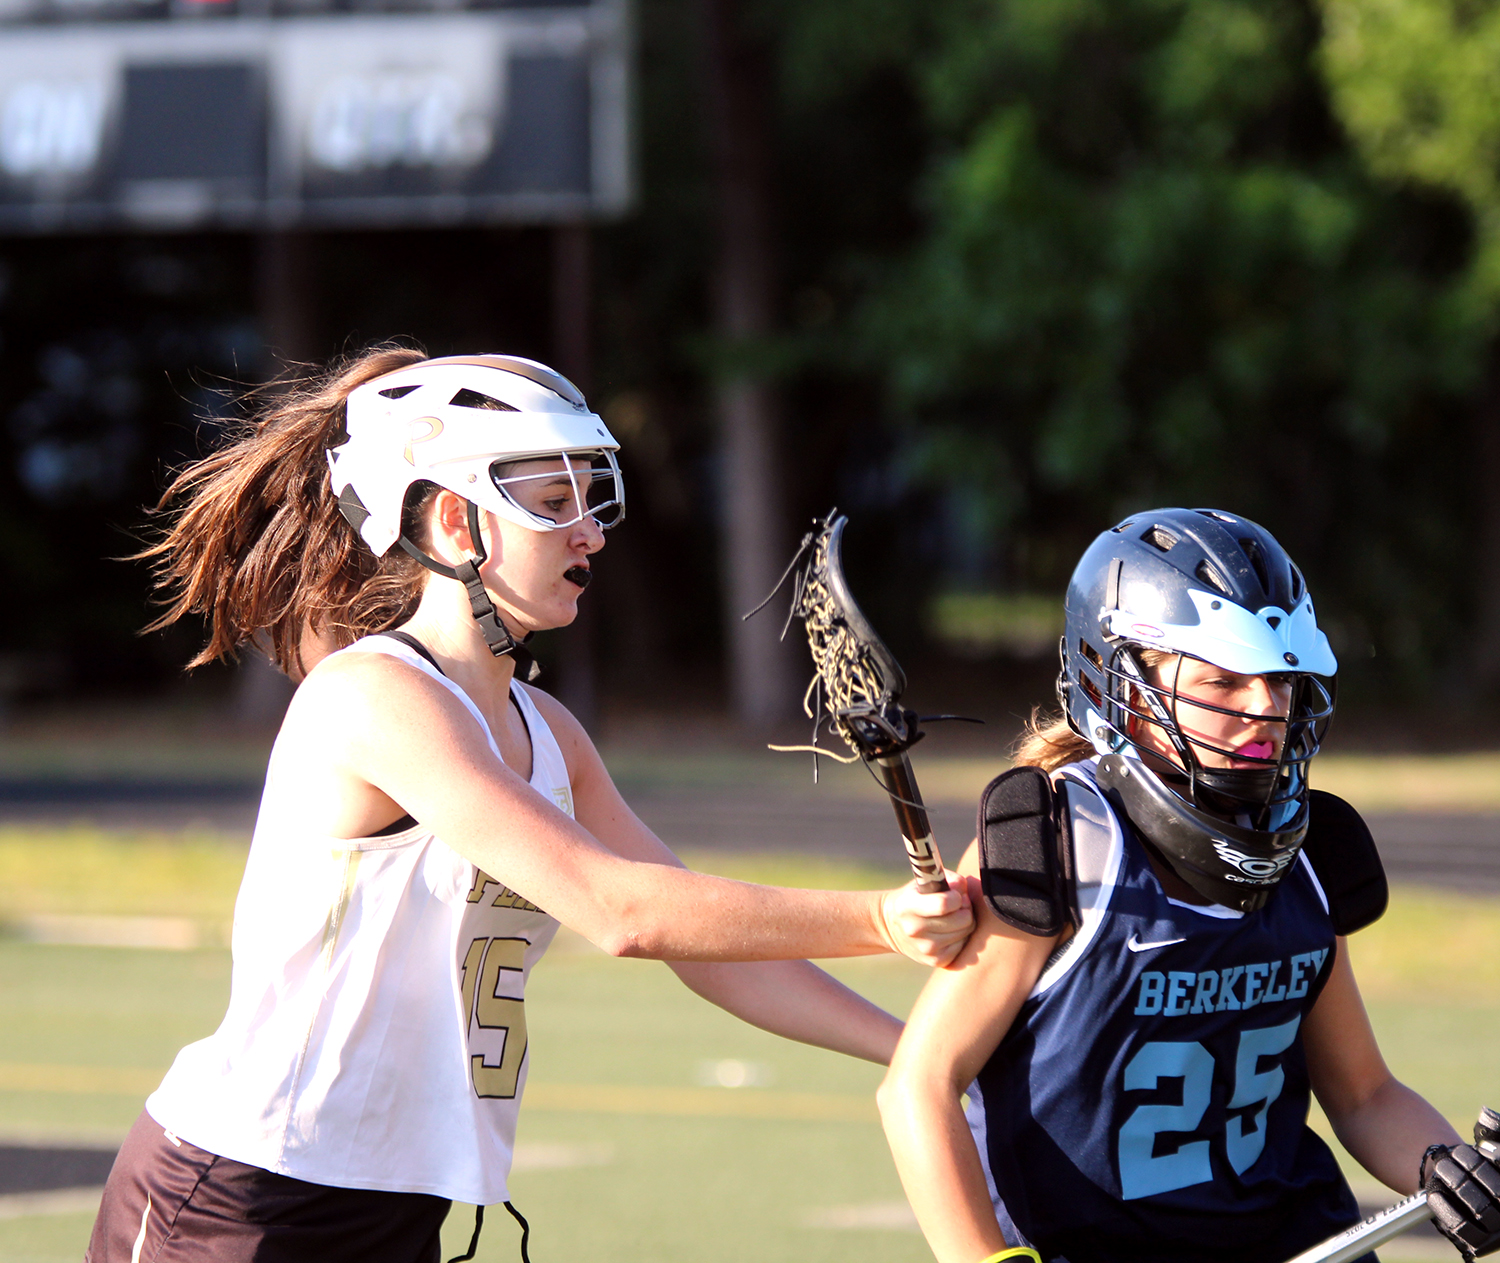 Pushing+at+the+offense%2C+sophomore+Carolee+Jones+attempts+to+knock+out+the+ball+April+2+at+Dad%E2%80%99s+Stadium.+The+girls+lacrosse+team+lost+to+Berkeley+High+School+7-6.++